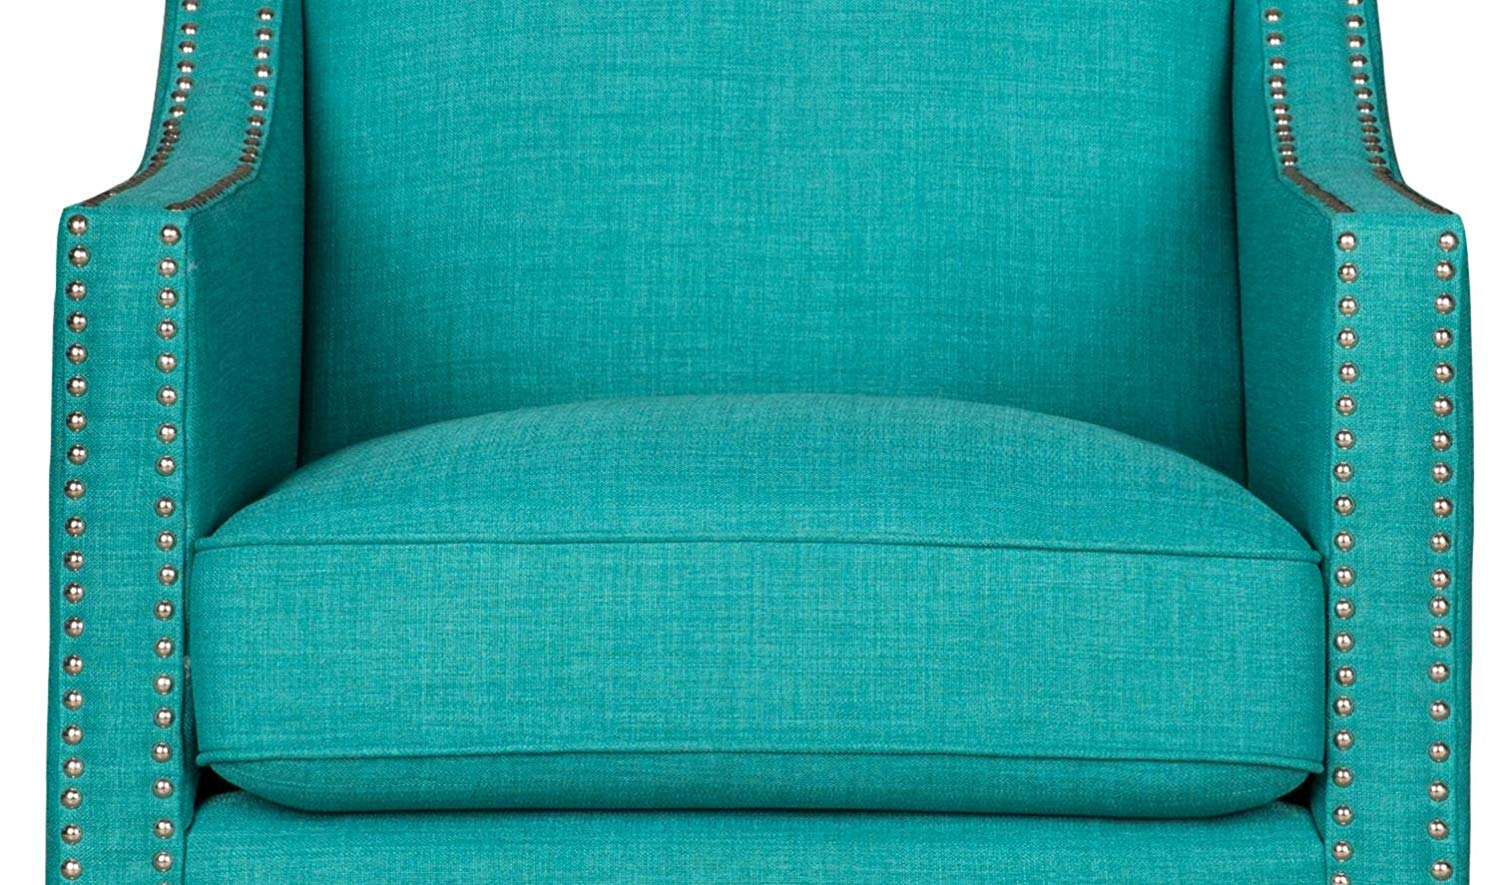 Phenomenal Cambridge Bridgehampton Accent Chair With Nailhead Trim In Teal Teal Onthecornerstone Fun Painted Chair Ideas Images Onthecornerstoneorg